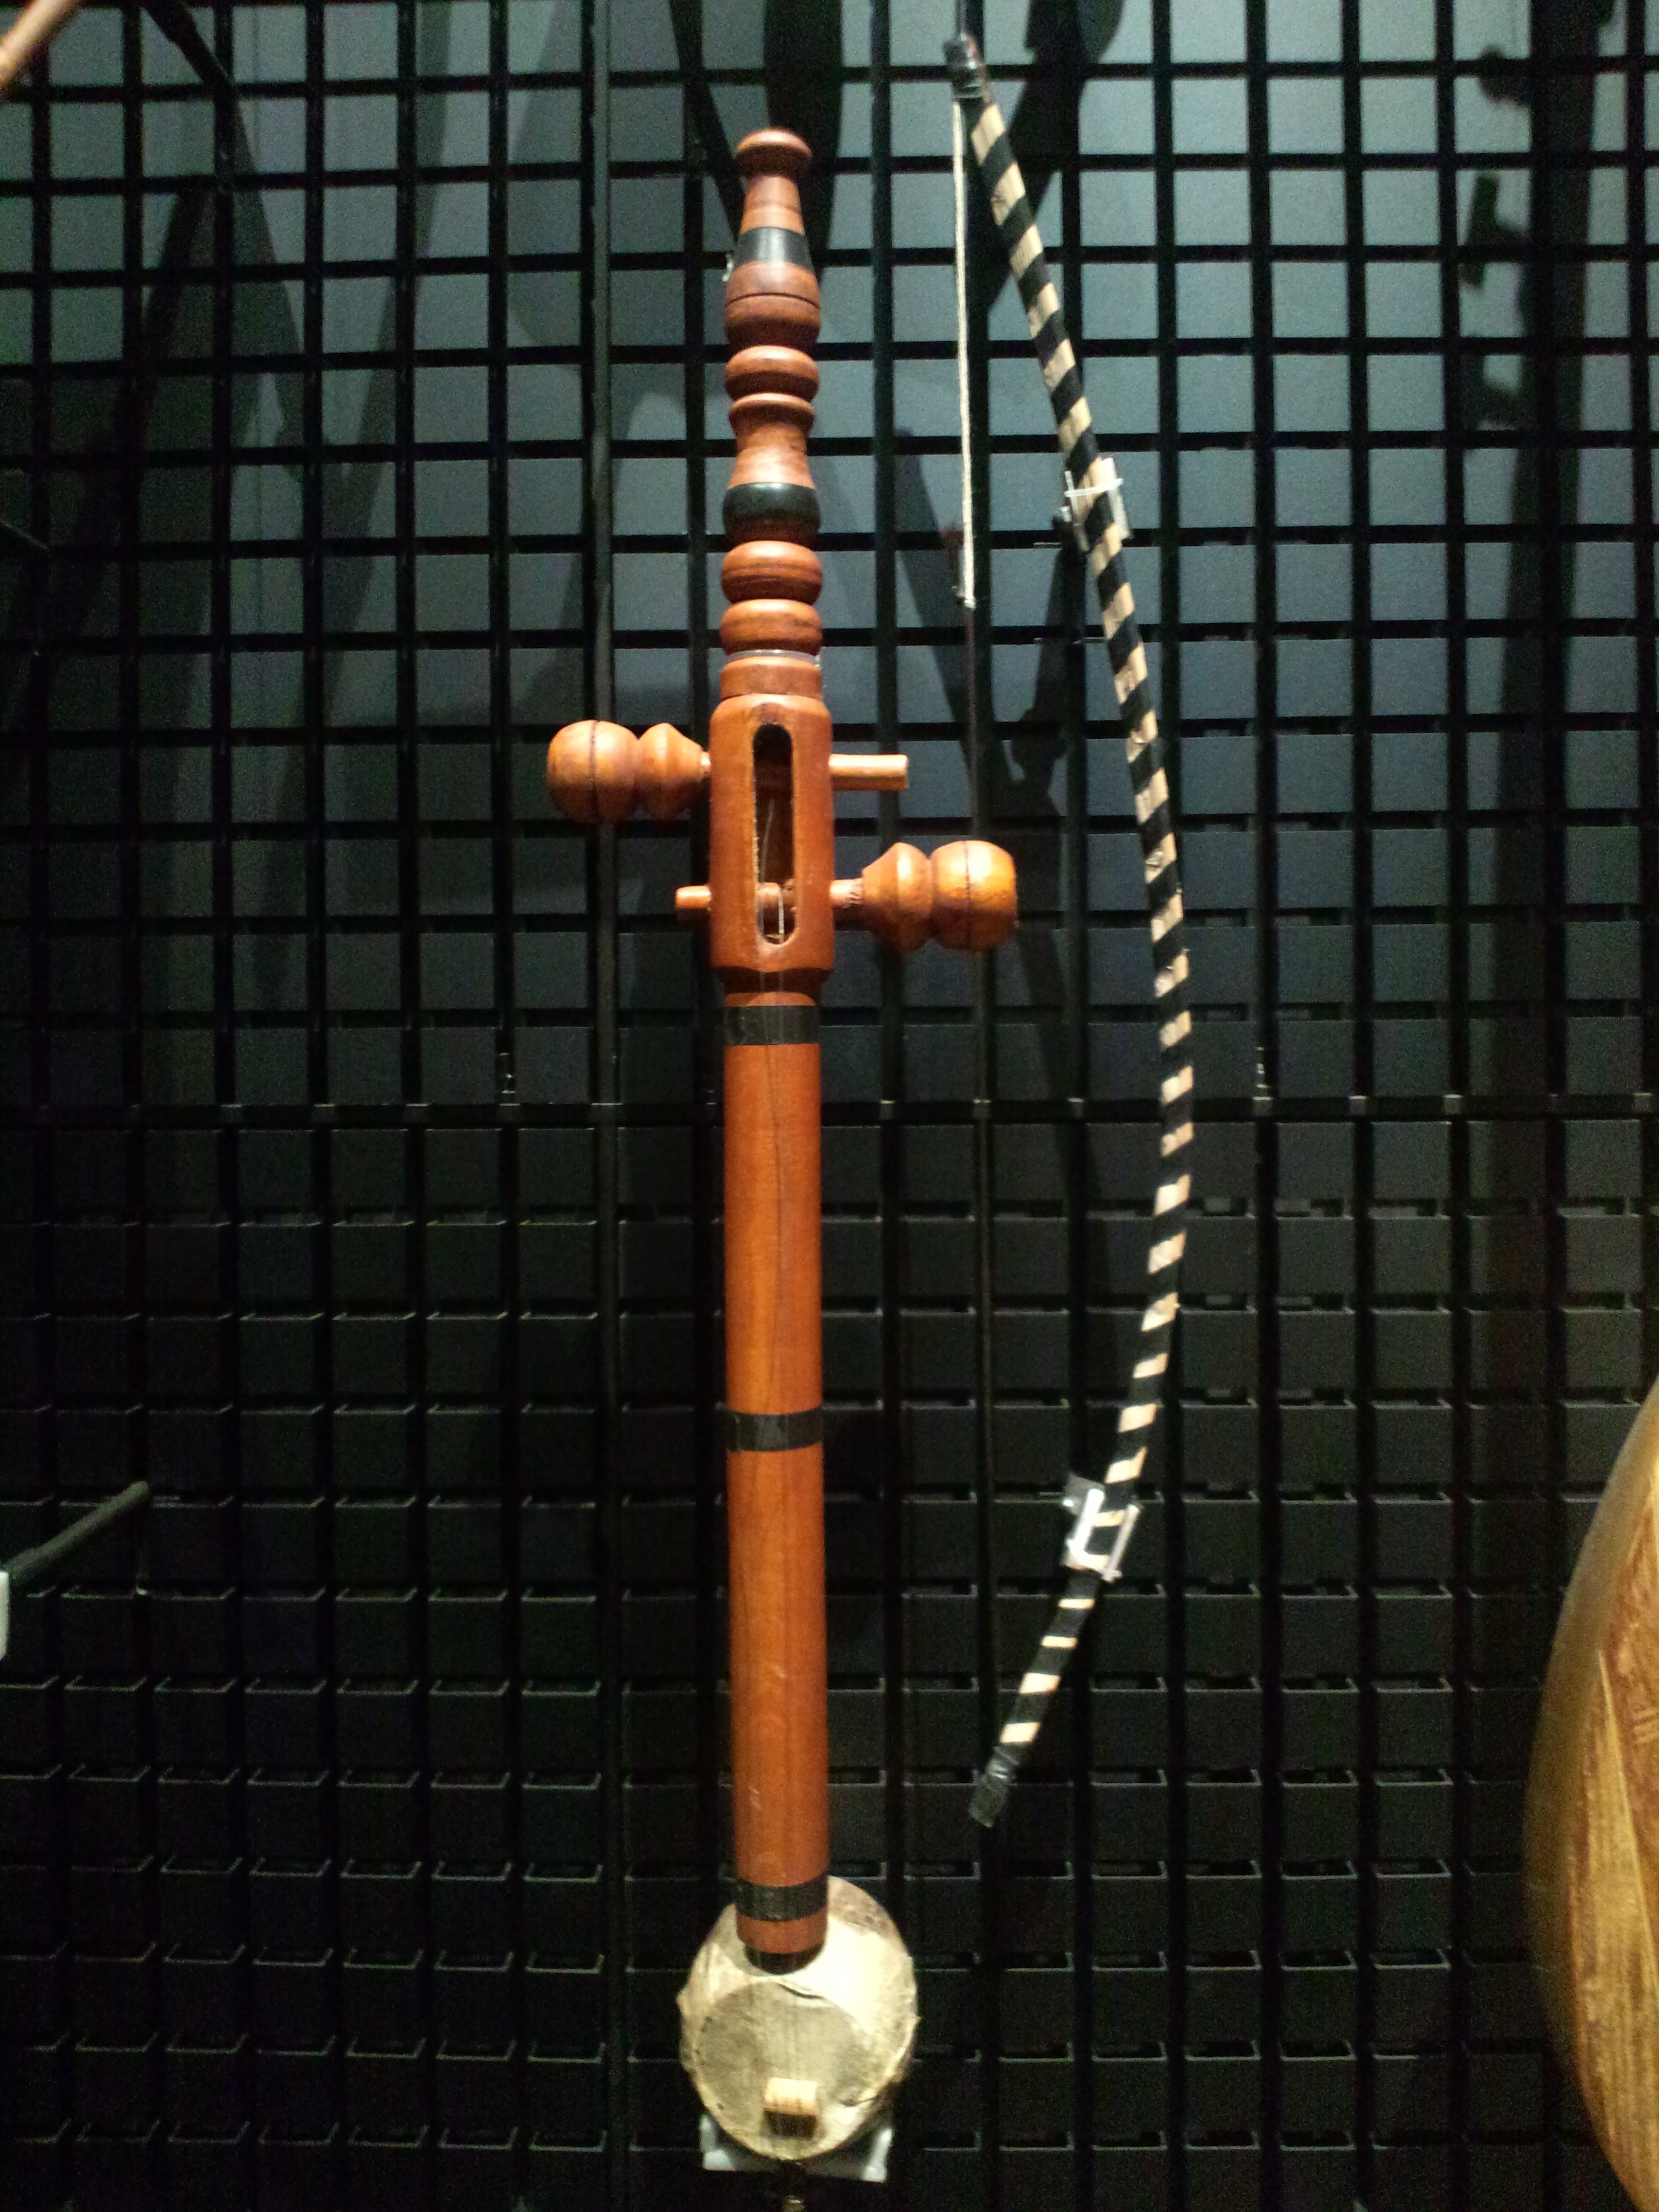 external image National_Museum_of_Ethnology%2C_Osaka_-_Rabab_-_Cairo_in_Egypt_-_Made_in_the_1990s.jpg